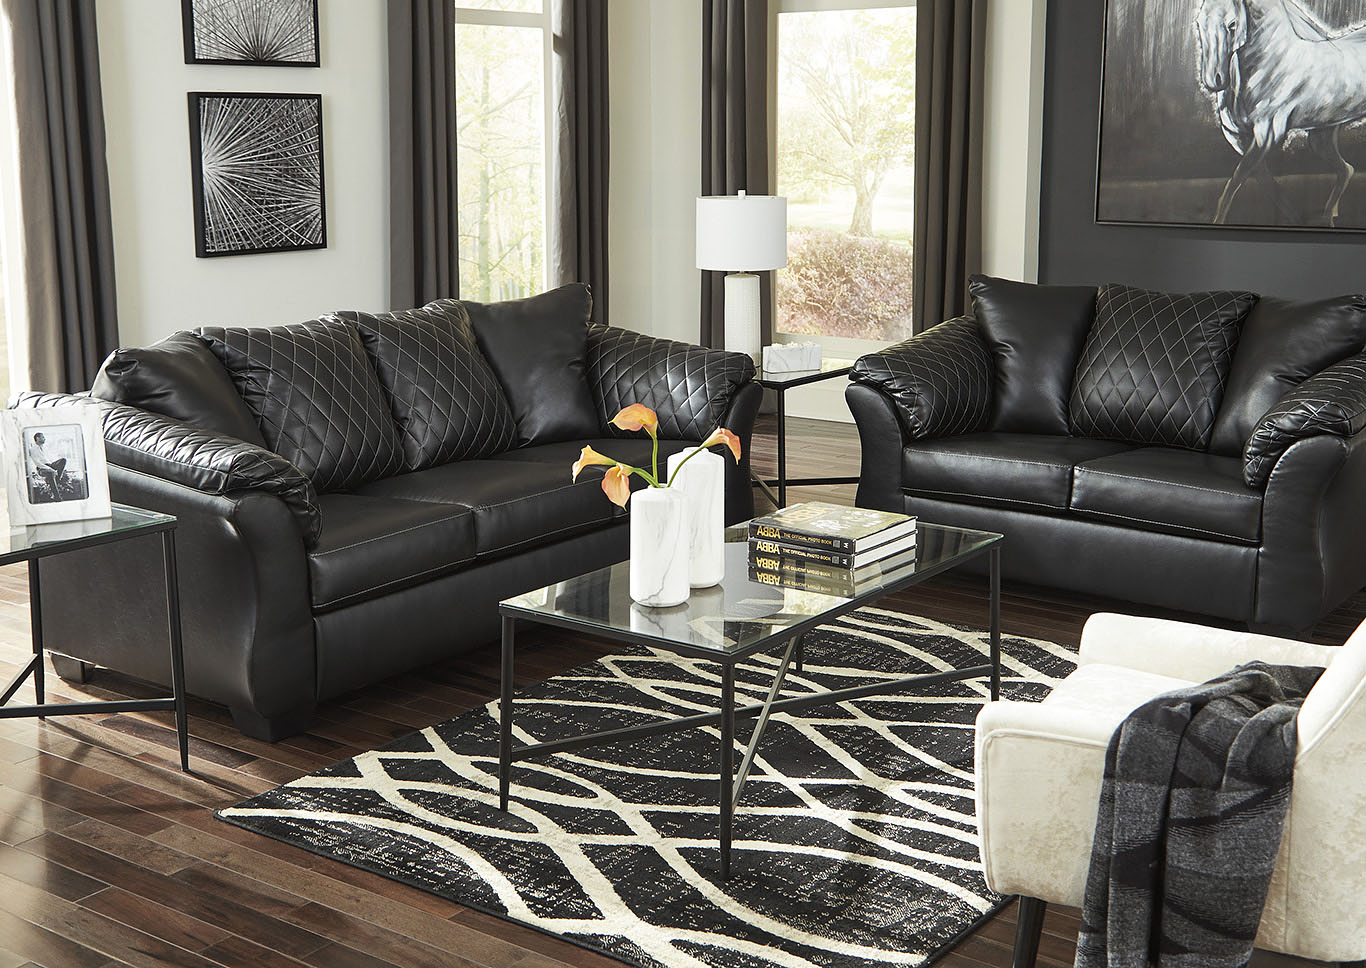 Bertrillo Black Sofa & Loveseat,Signature Design By Ashley